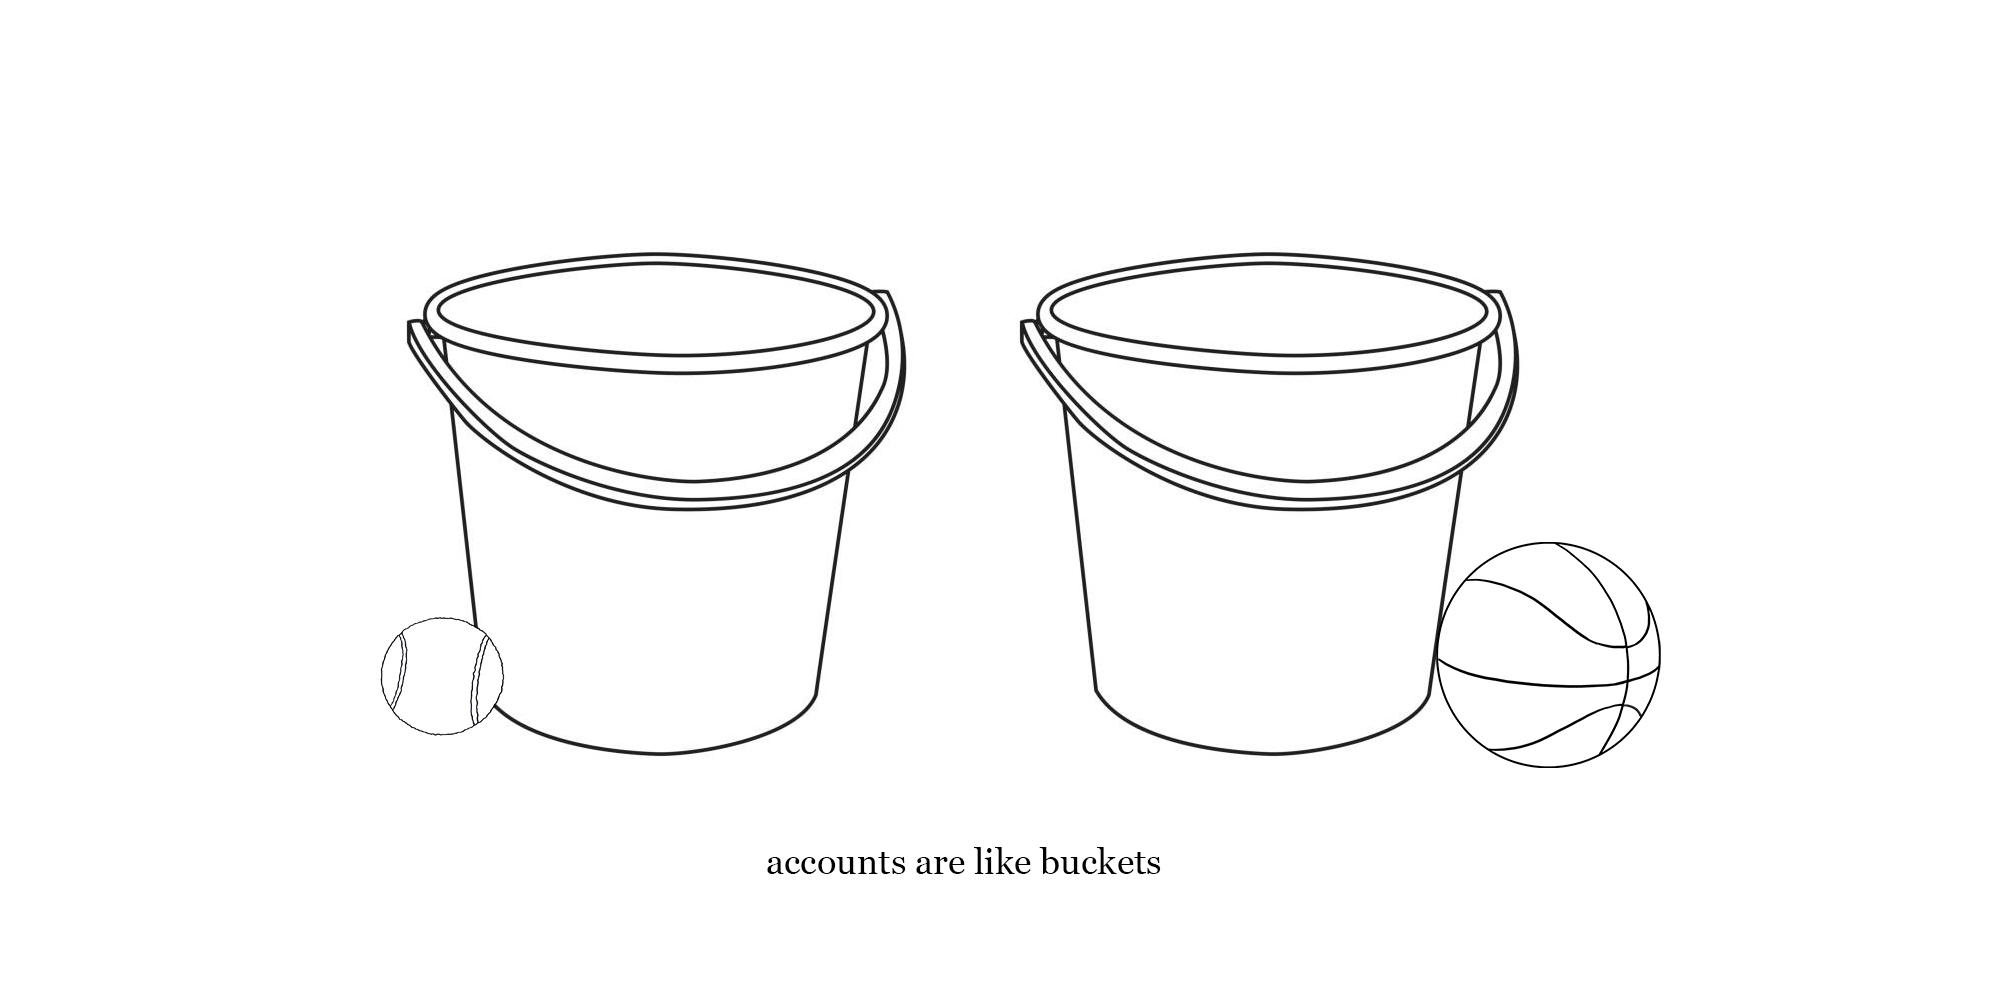 xero setup - accounts are like buckets